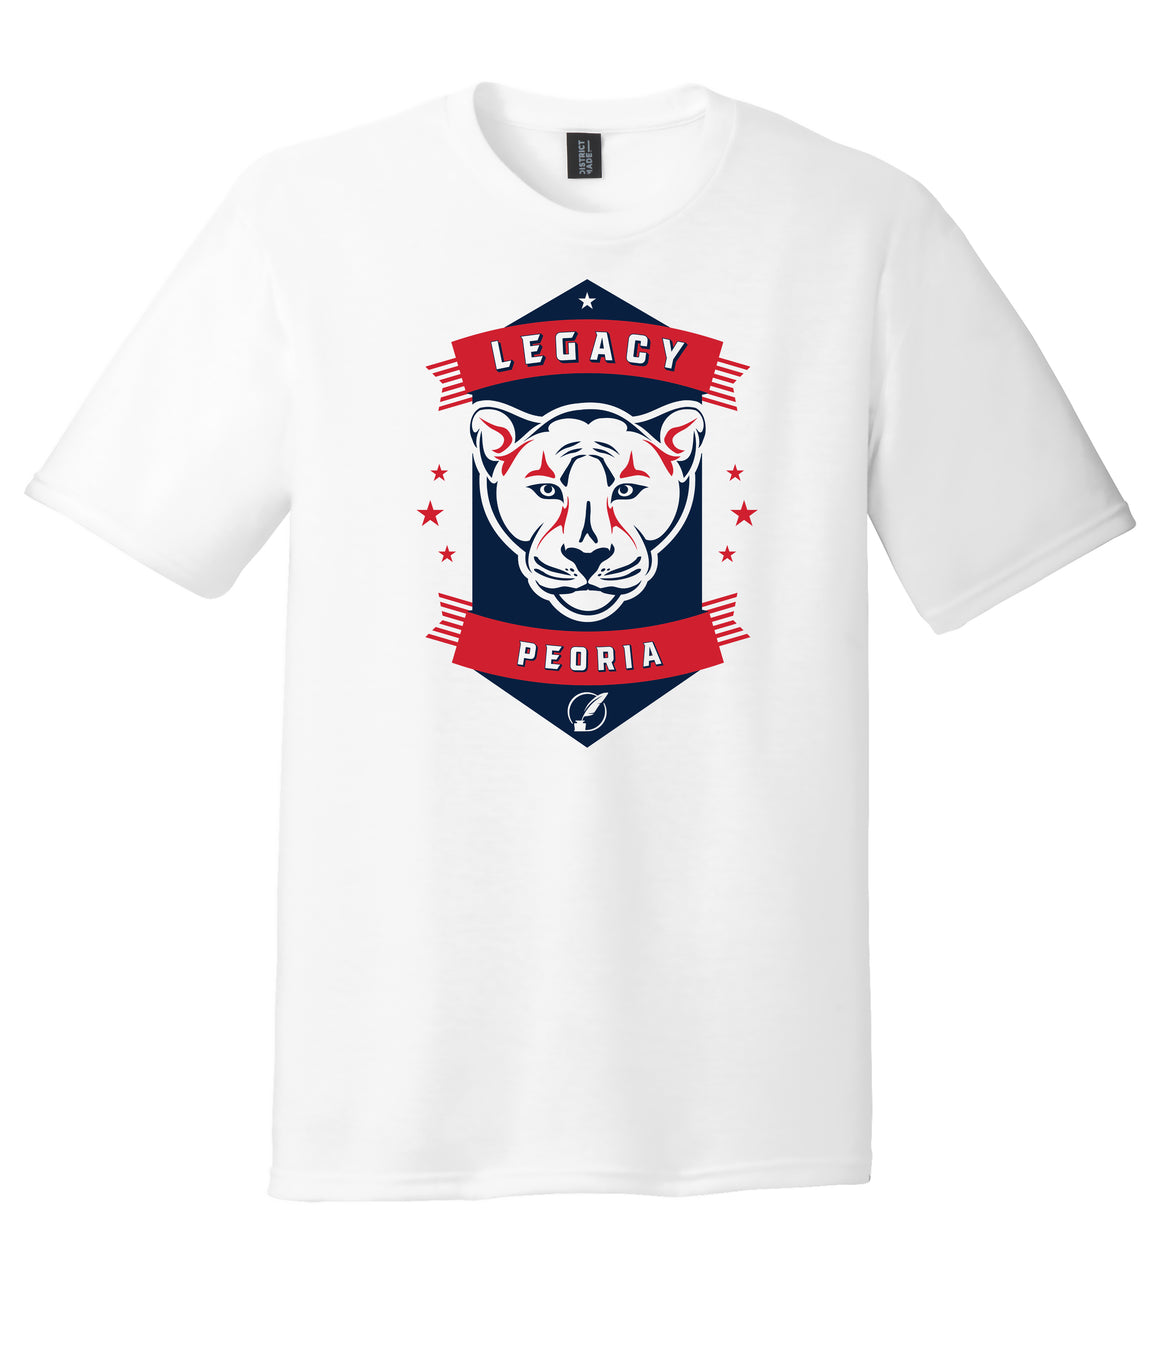 Legacy Traditional School Peoria - White Spirit Day Shirt w/Mascot